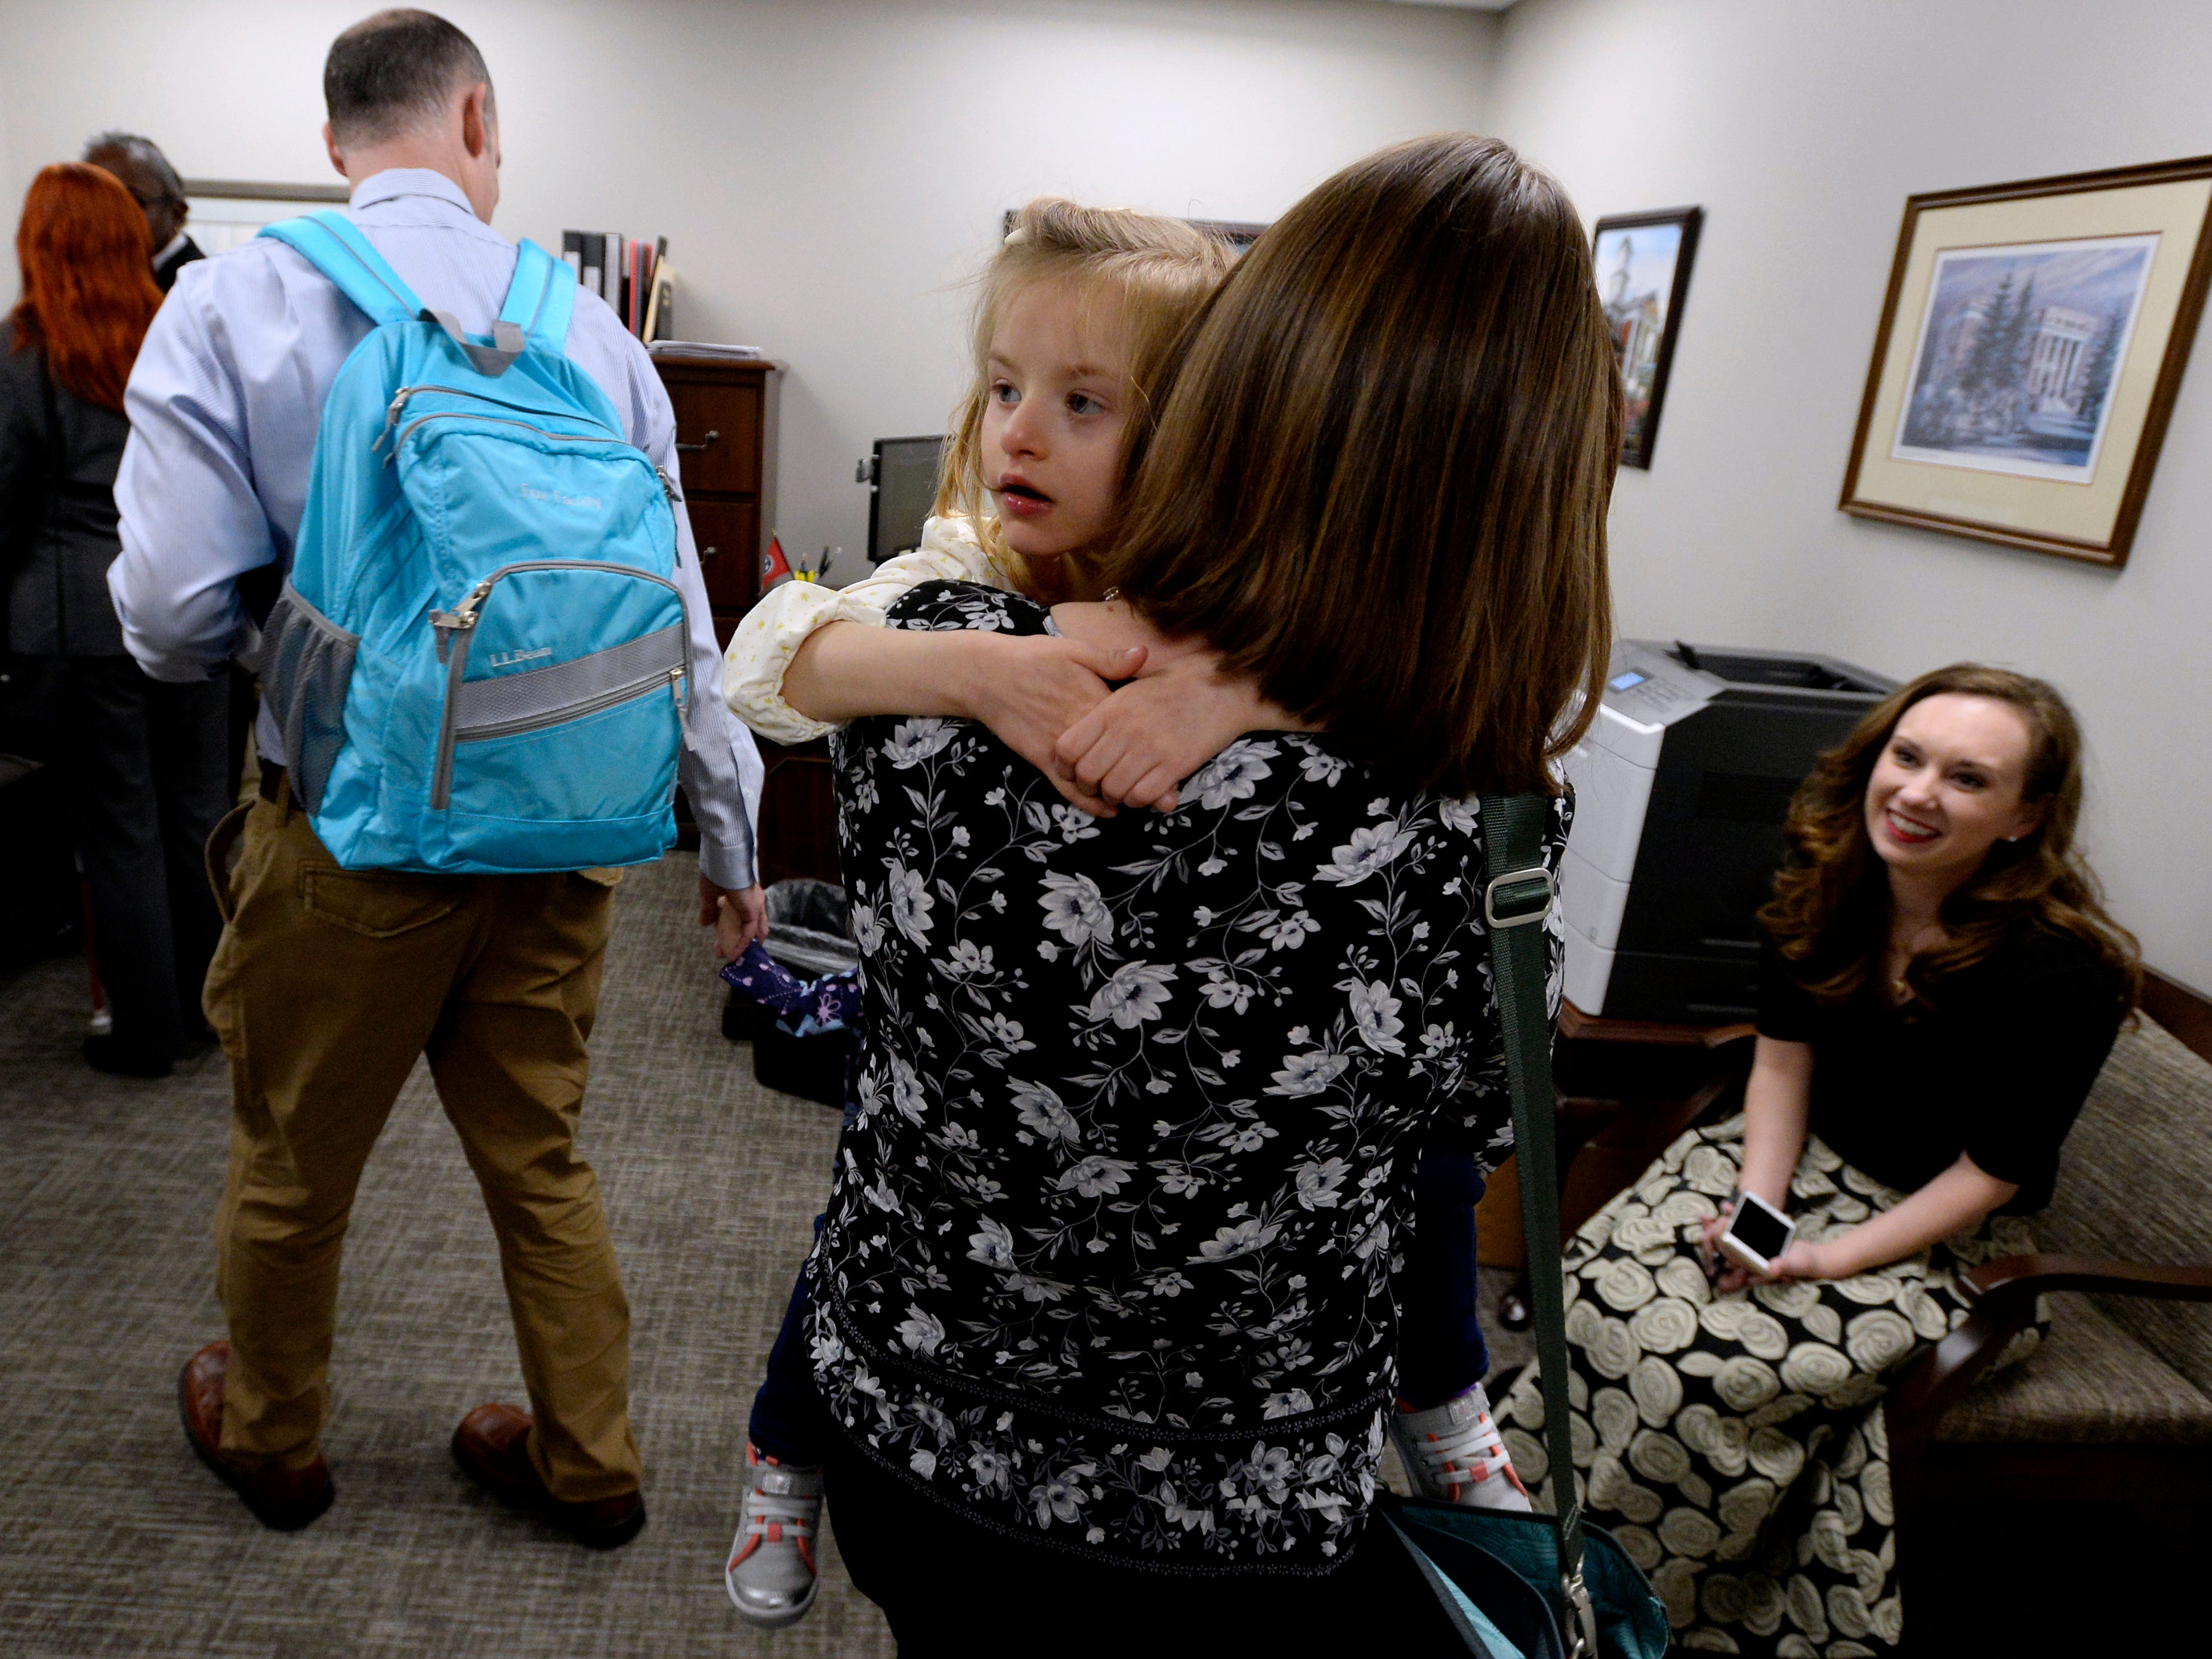 Jessica Fox, carries her daughter Clare, 4, as she follows her husband Sean into the office of Tennessee State Sen. Rusty Crowe, R-Johnson City, before talking with him during Disability Day on the Hill Tuesday, Feb. 12, 2019, in Nashville, Tenn. Families and advocates of people with disabilities in Tennessee met with lawmakers to express concerns and the needs of the disabled in the state.